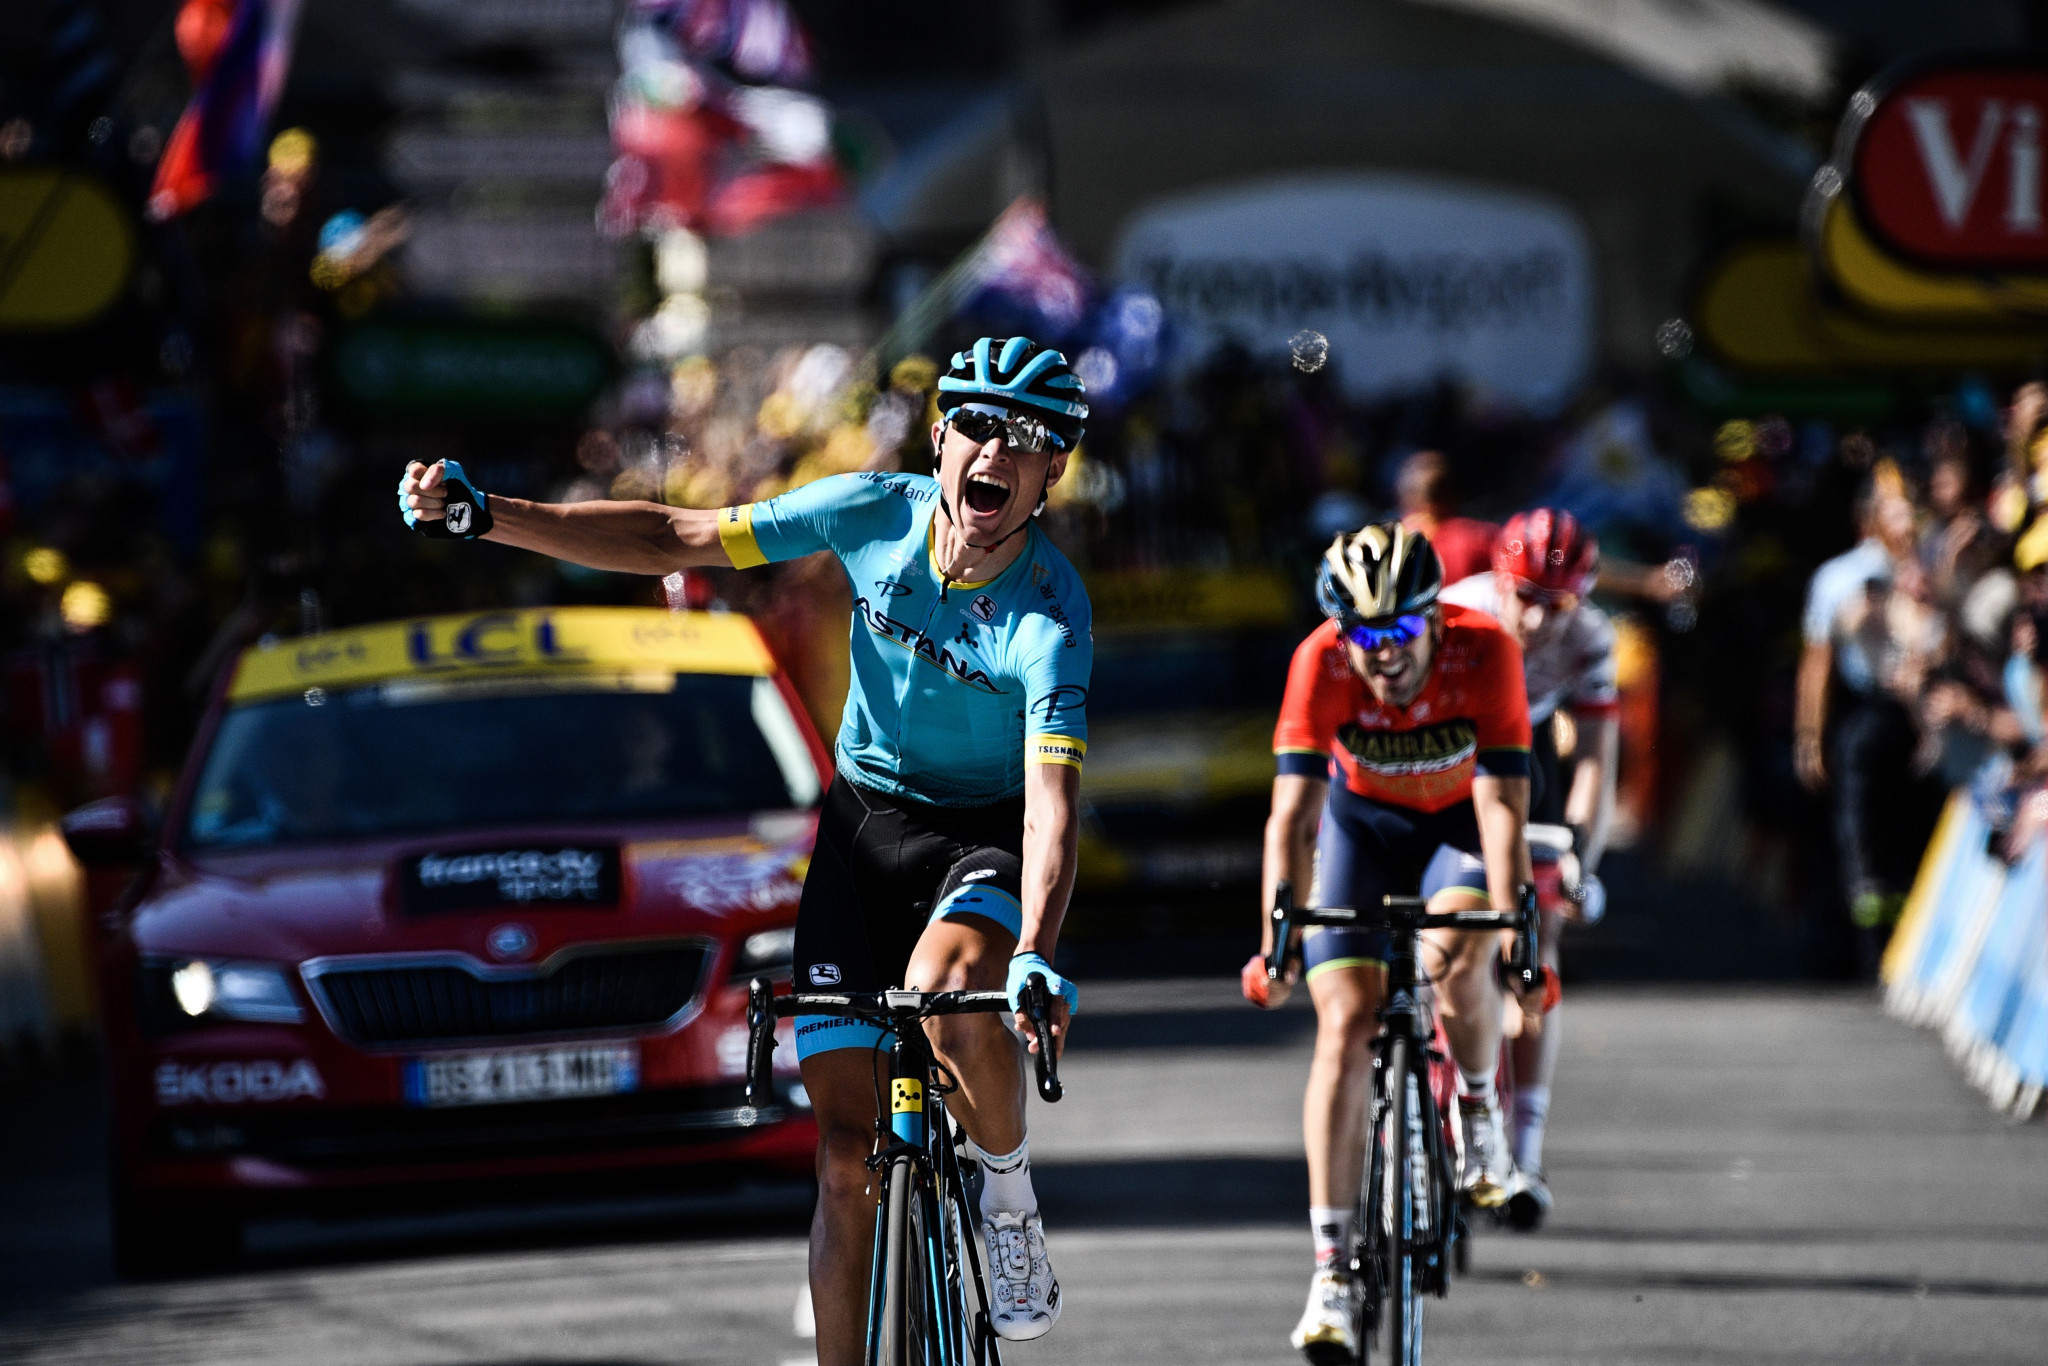 Cort clinches maiden Tour de France stage win in Carcassonne